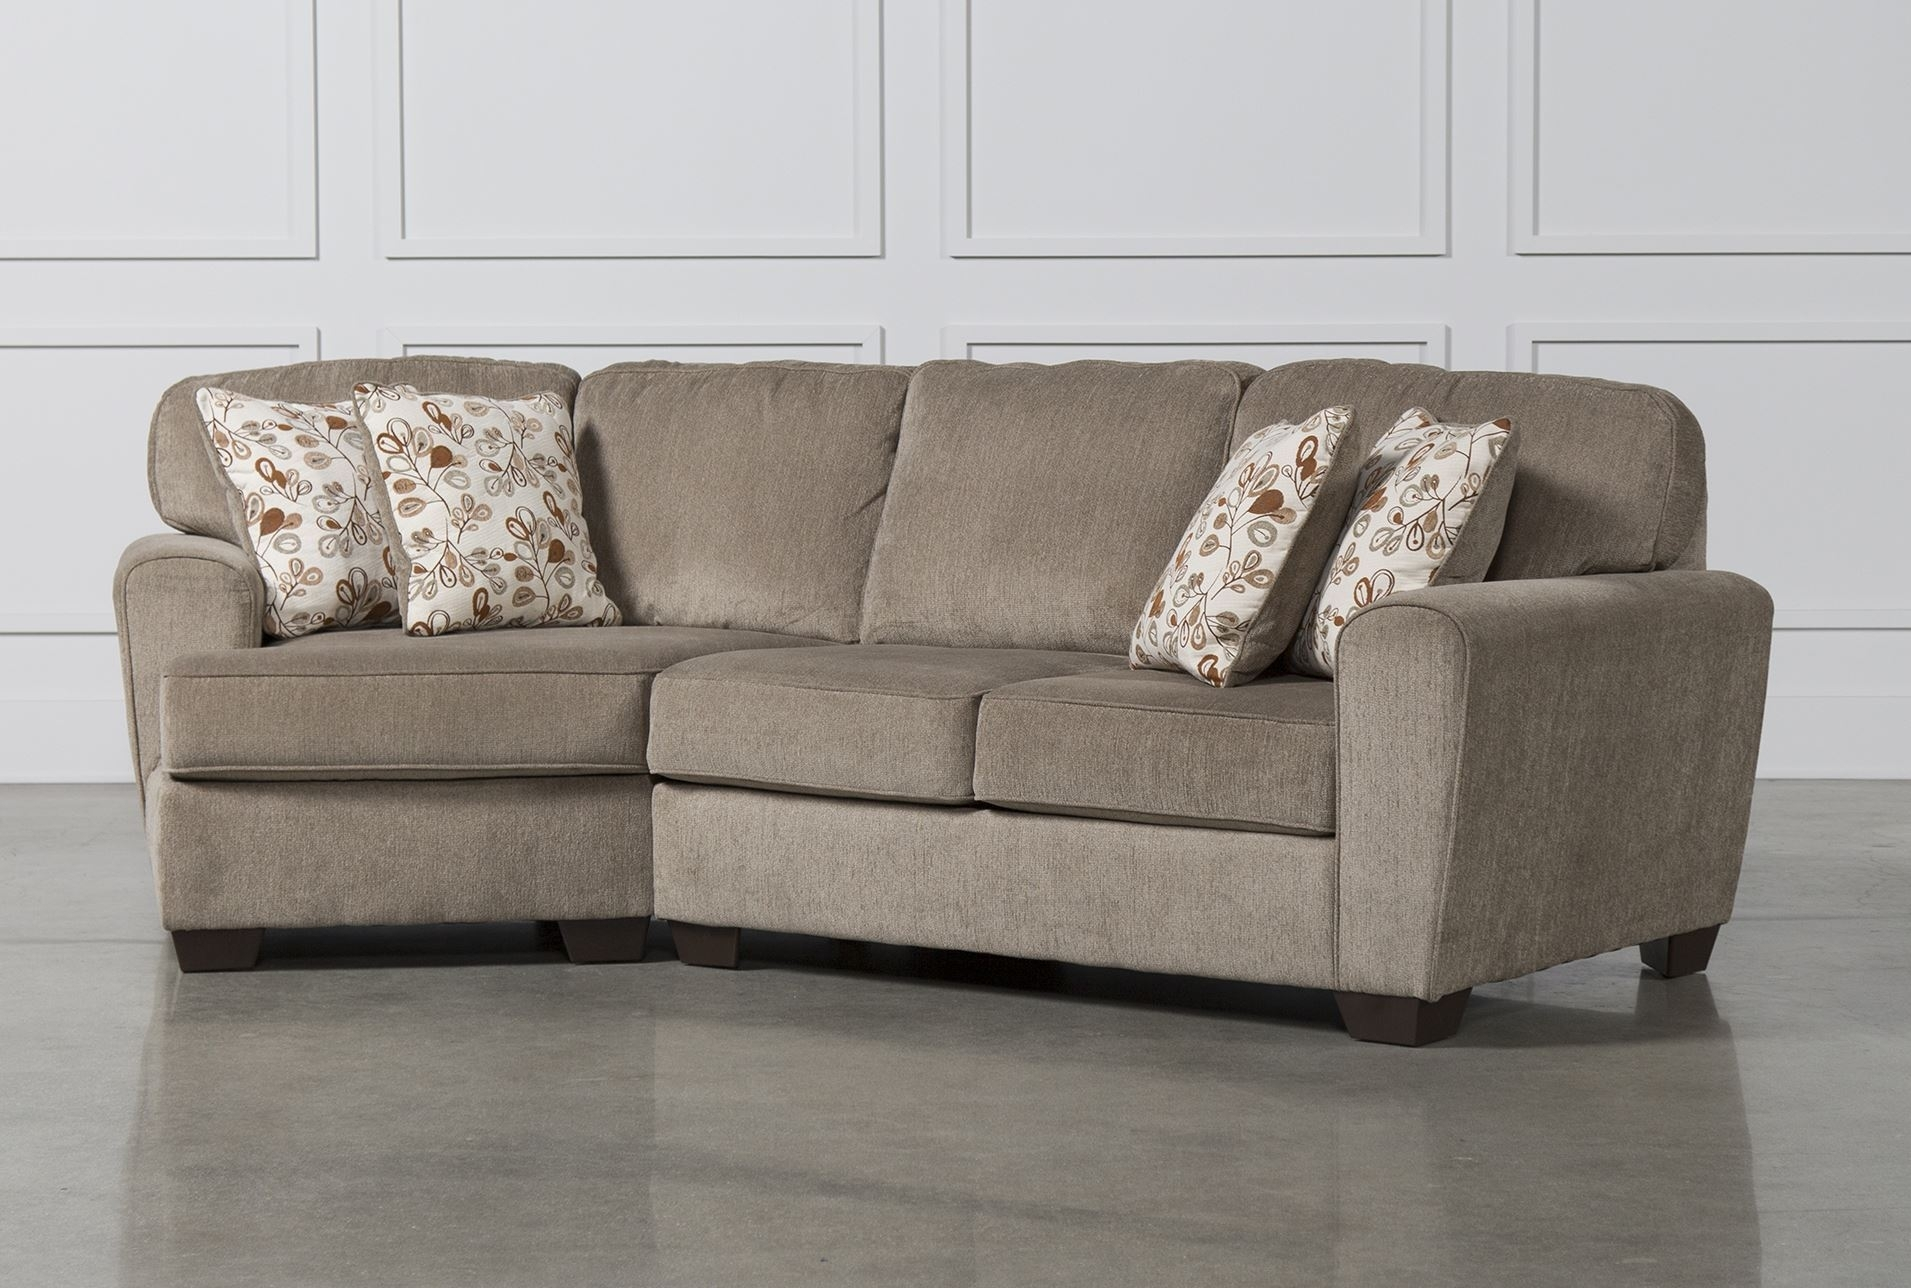 Awesome Collection Of 2 Piece Chaise Sectional In Kerri 2 Piece with regard to Kerri 2 Piece Sectionals With Raf Chaise (Image 7 of 30)